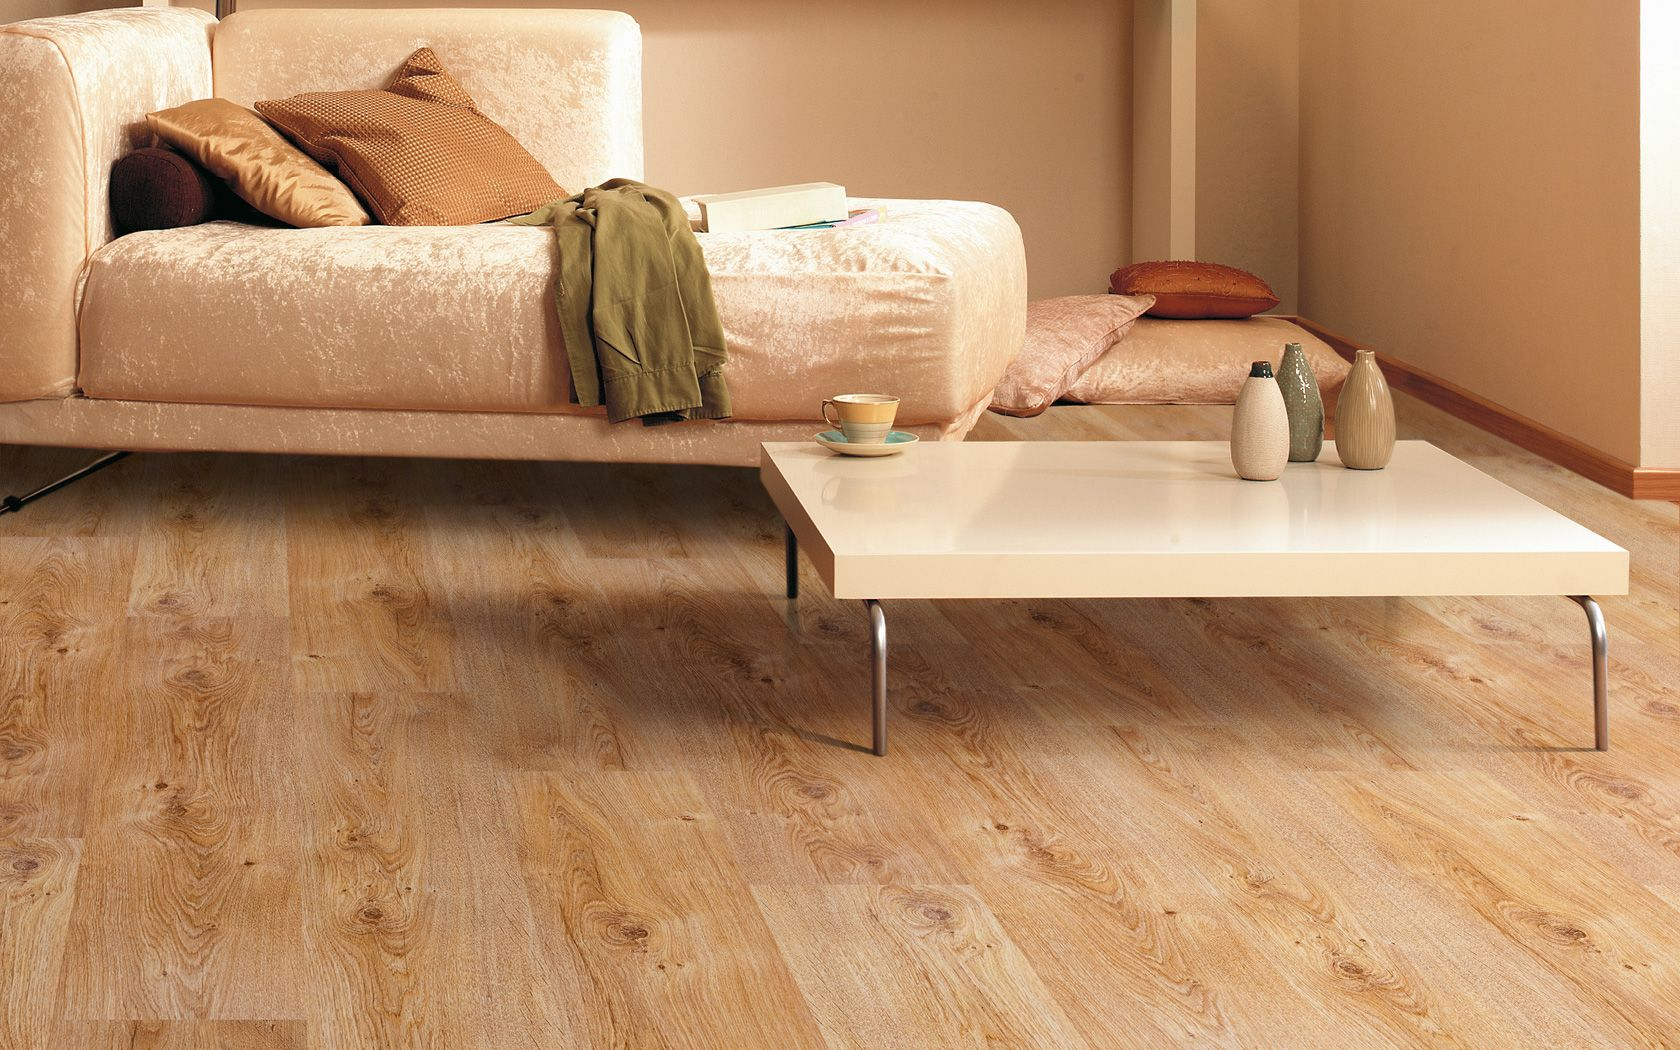 Balterio luxury laminate flooring tradition quattro baikal for Balterio legacy oak laminate flooring